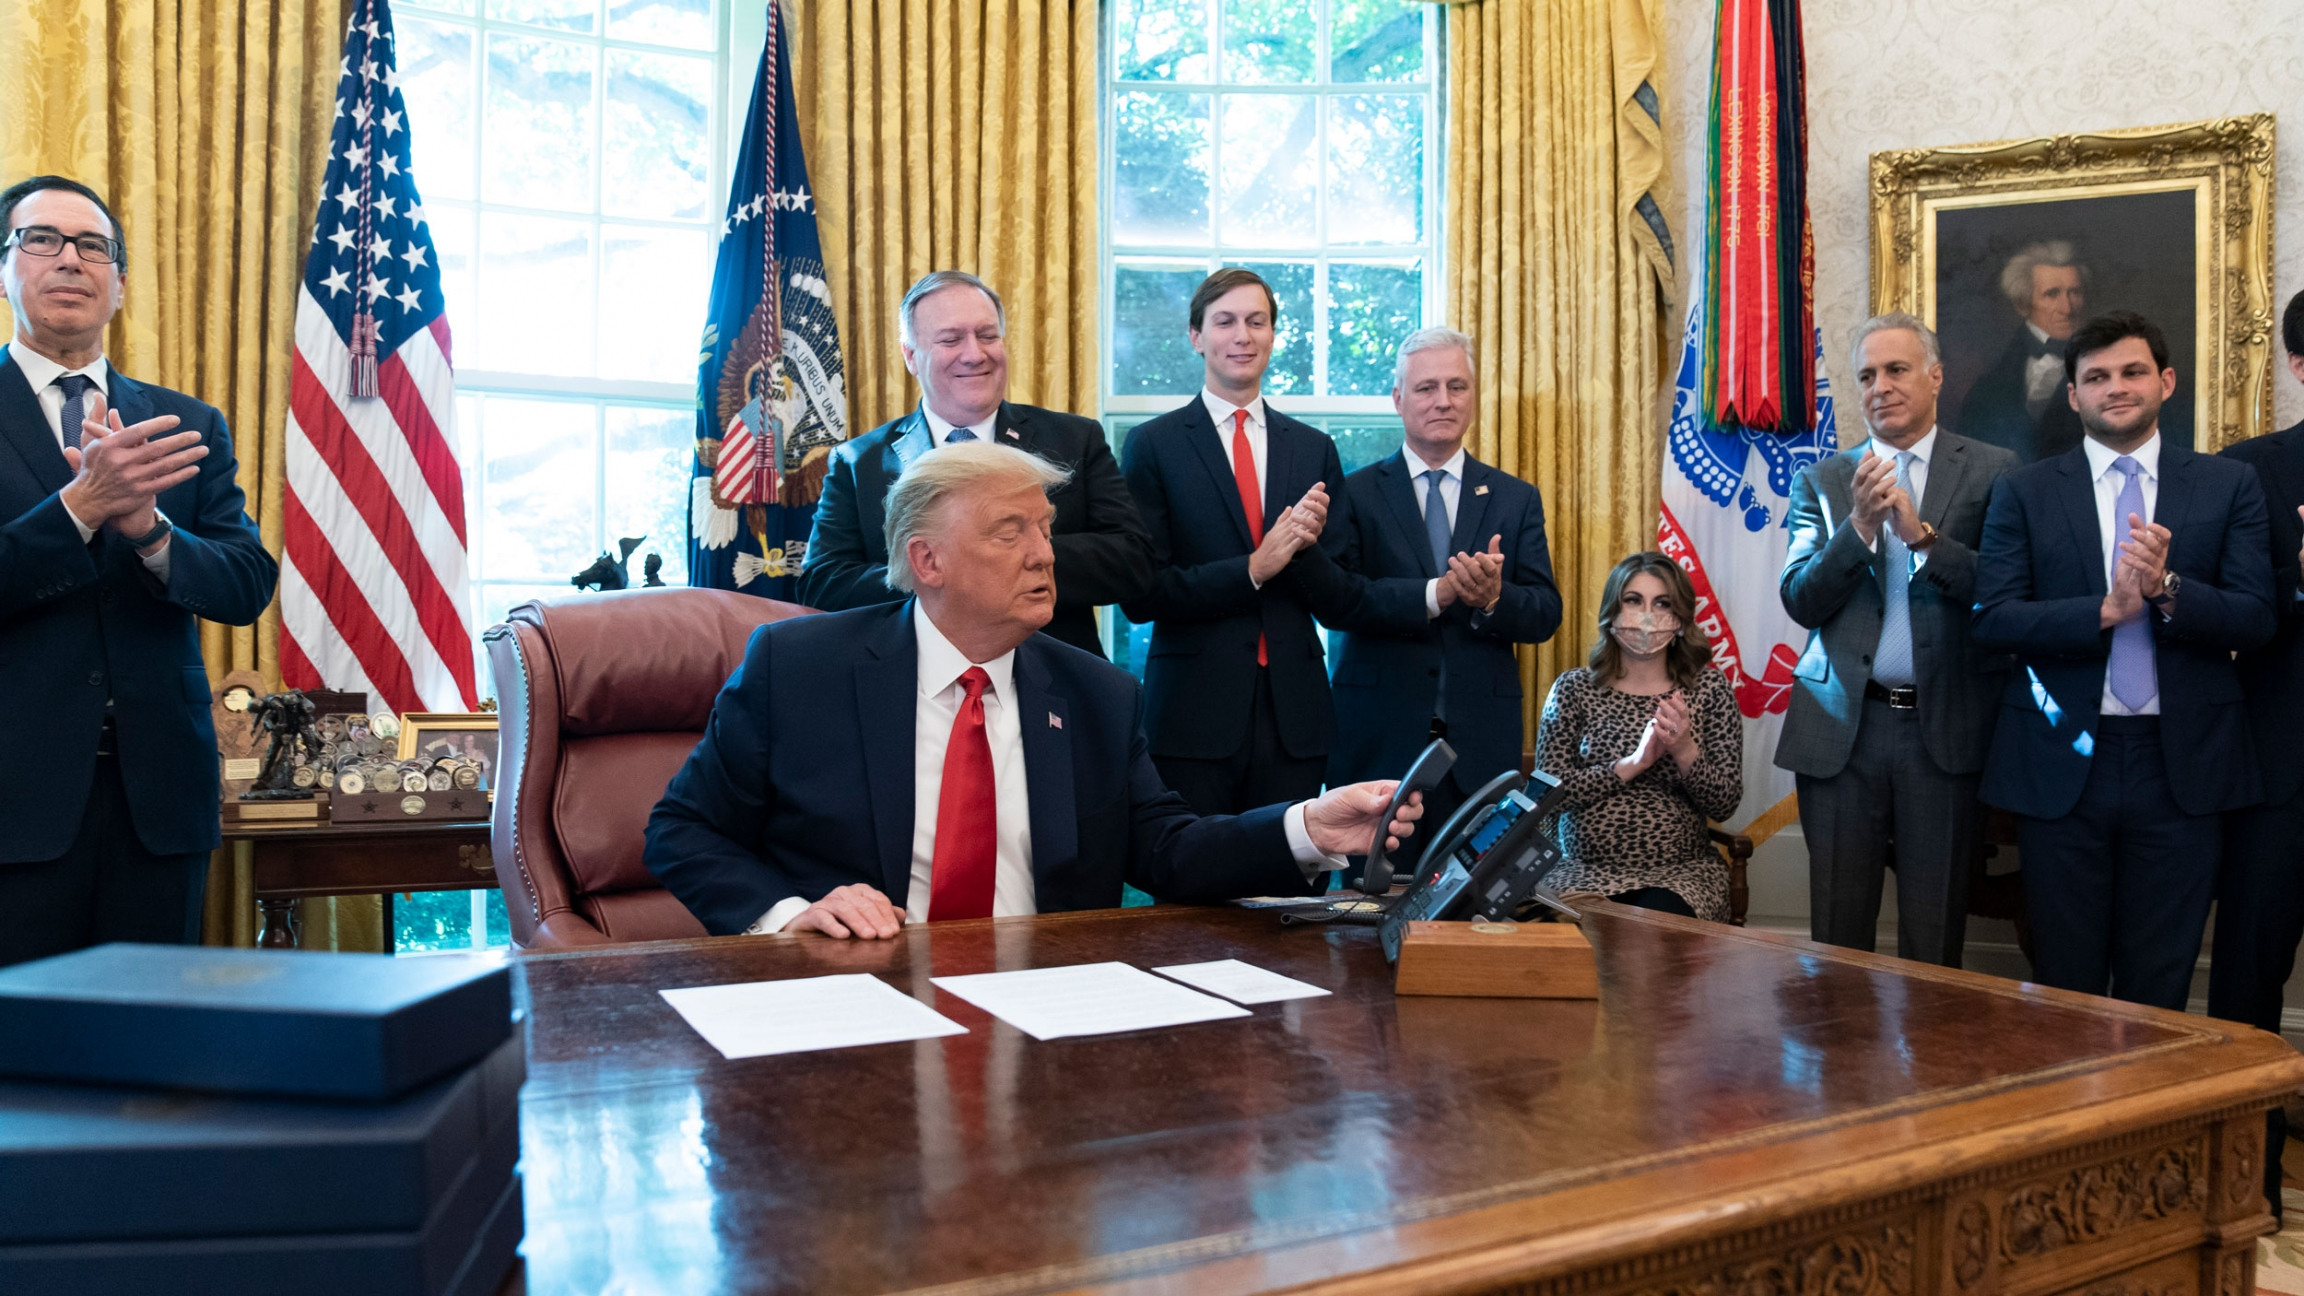 Donald Trump is shown sitting at a desk and wearing a dark suit with a red tie and hanging up a phone.